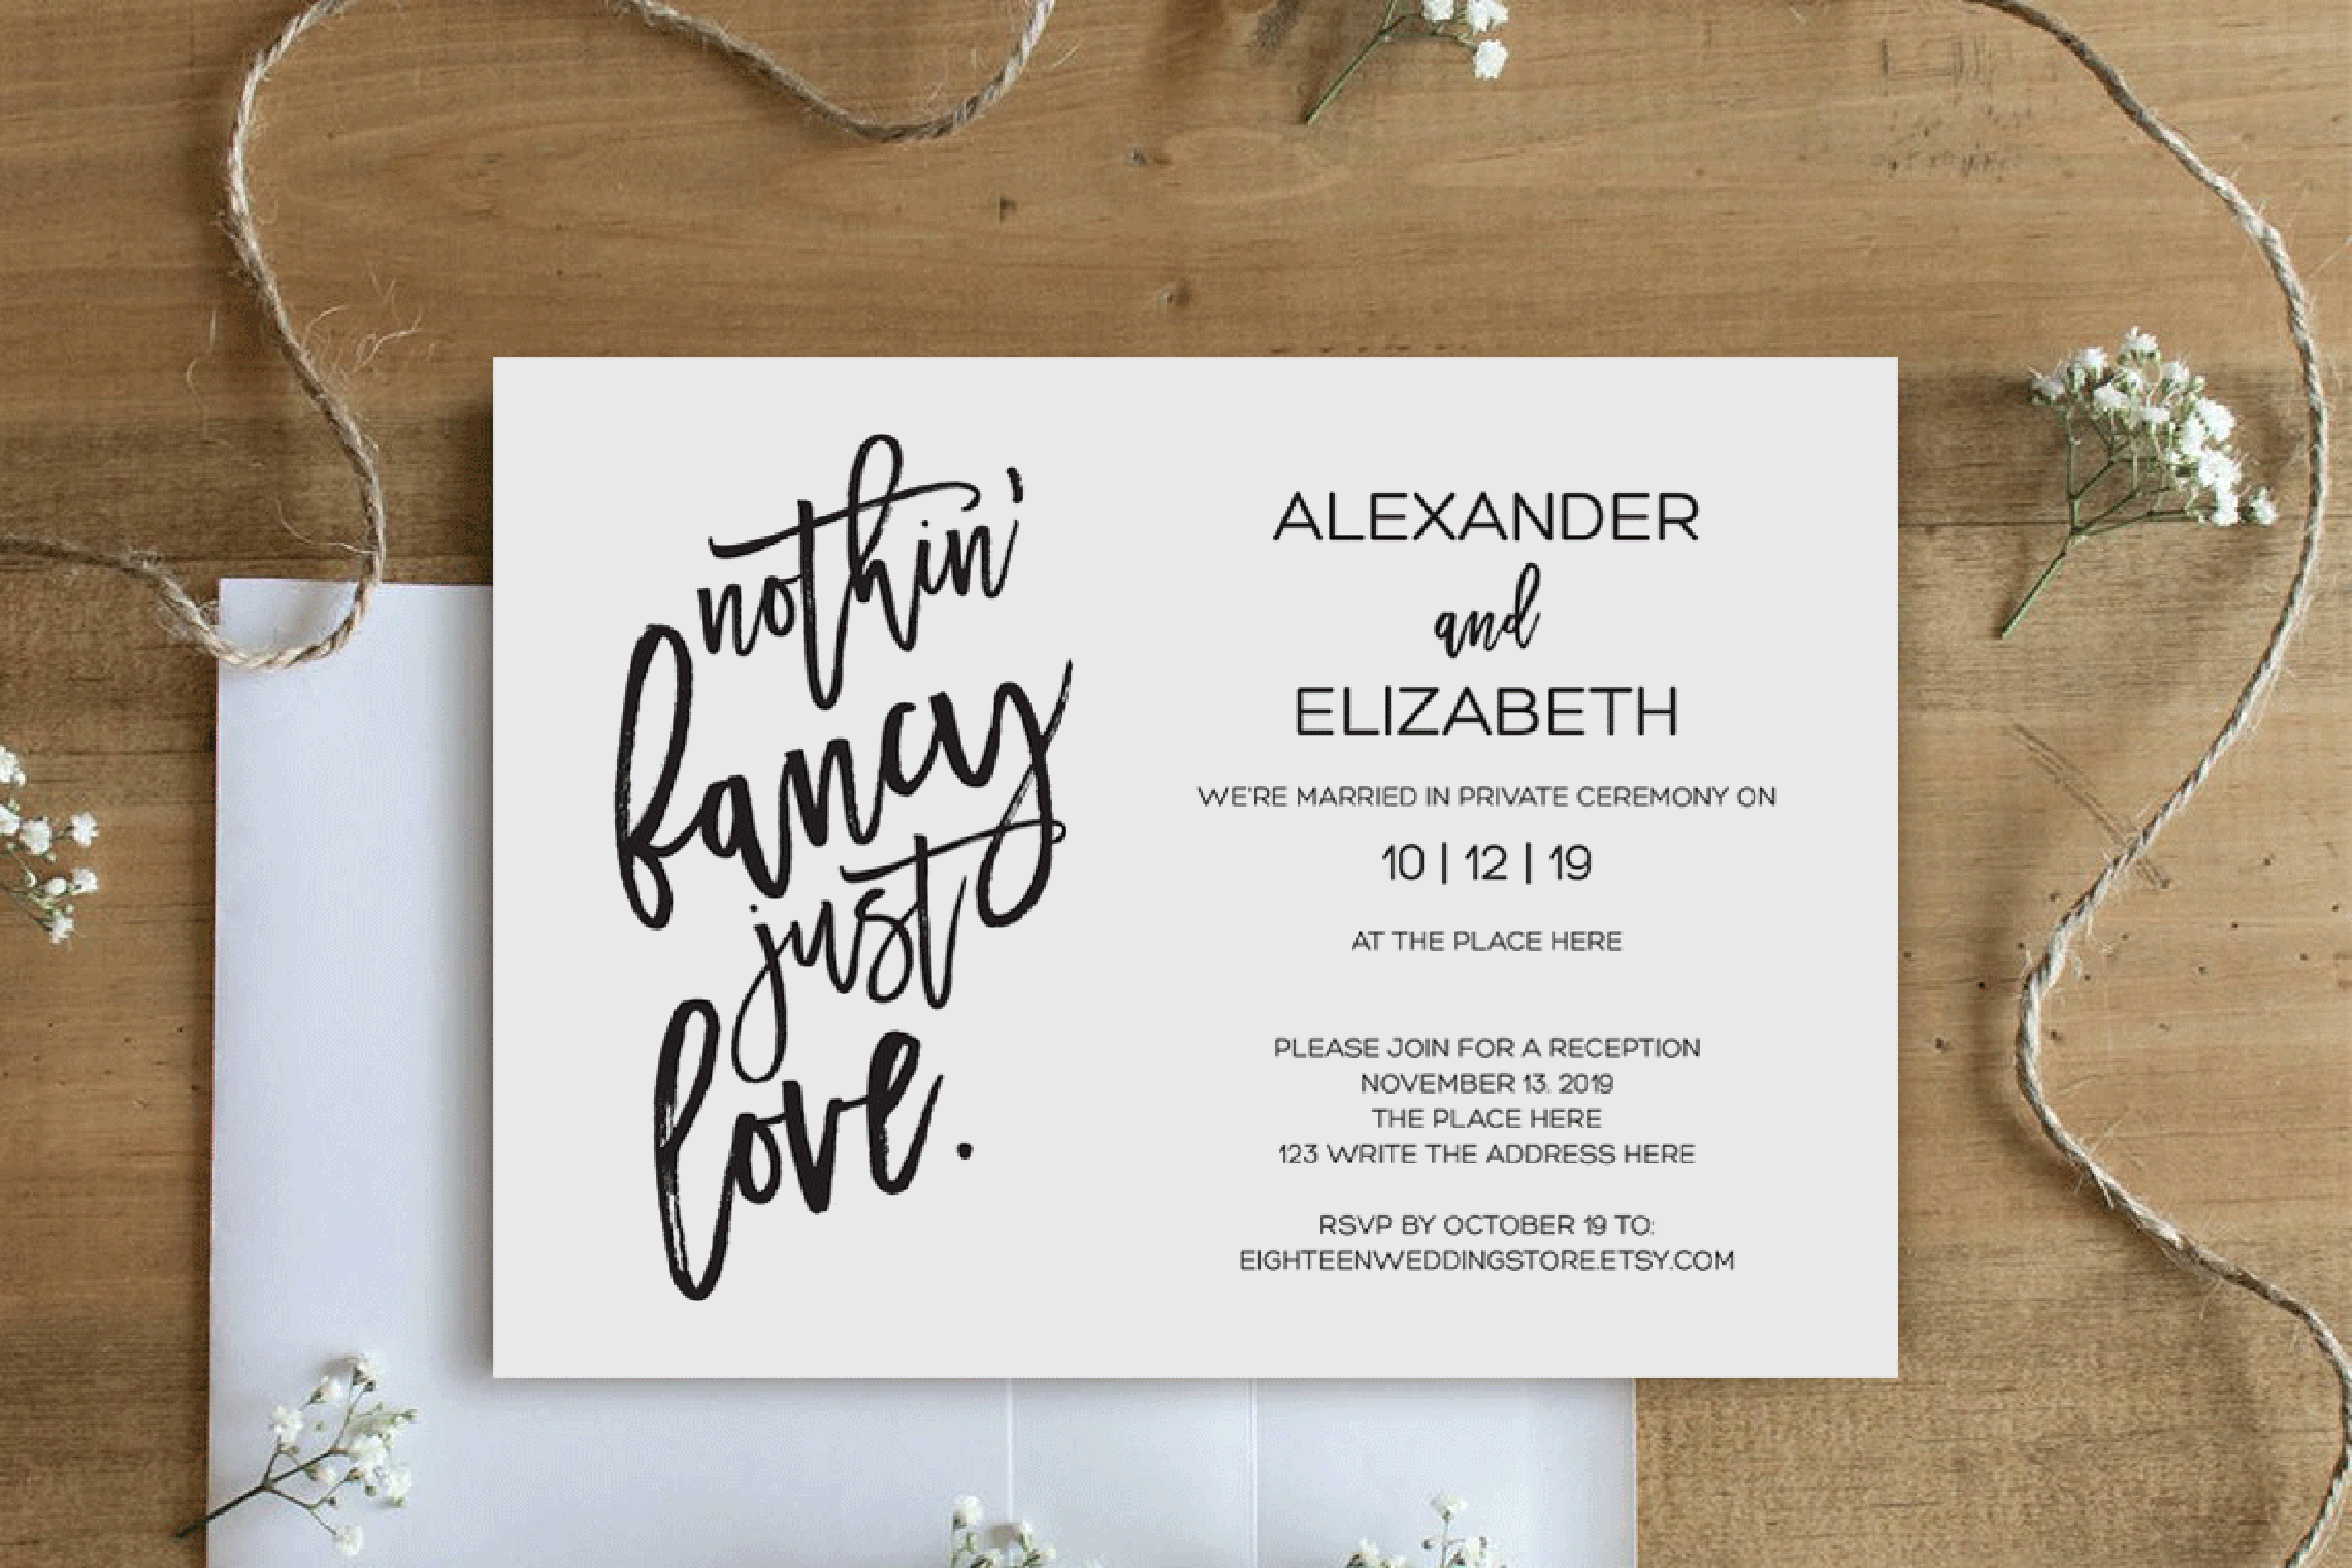 Elopement reception invitation, nothin fancy just love example image 3